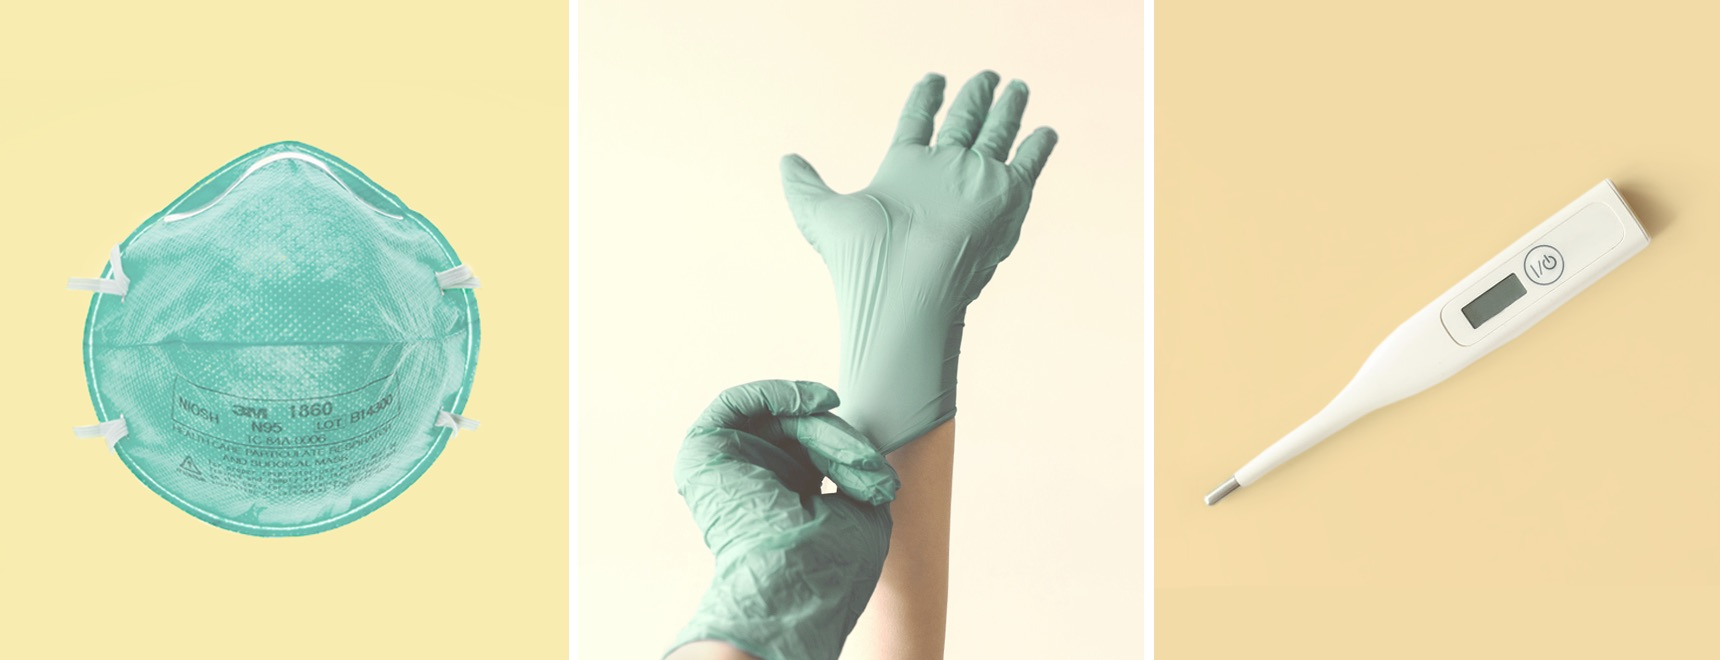 Mask, gloves, and thermometer